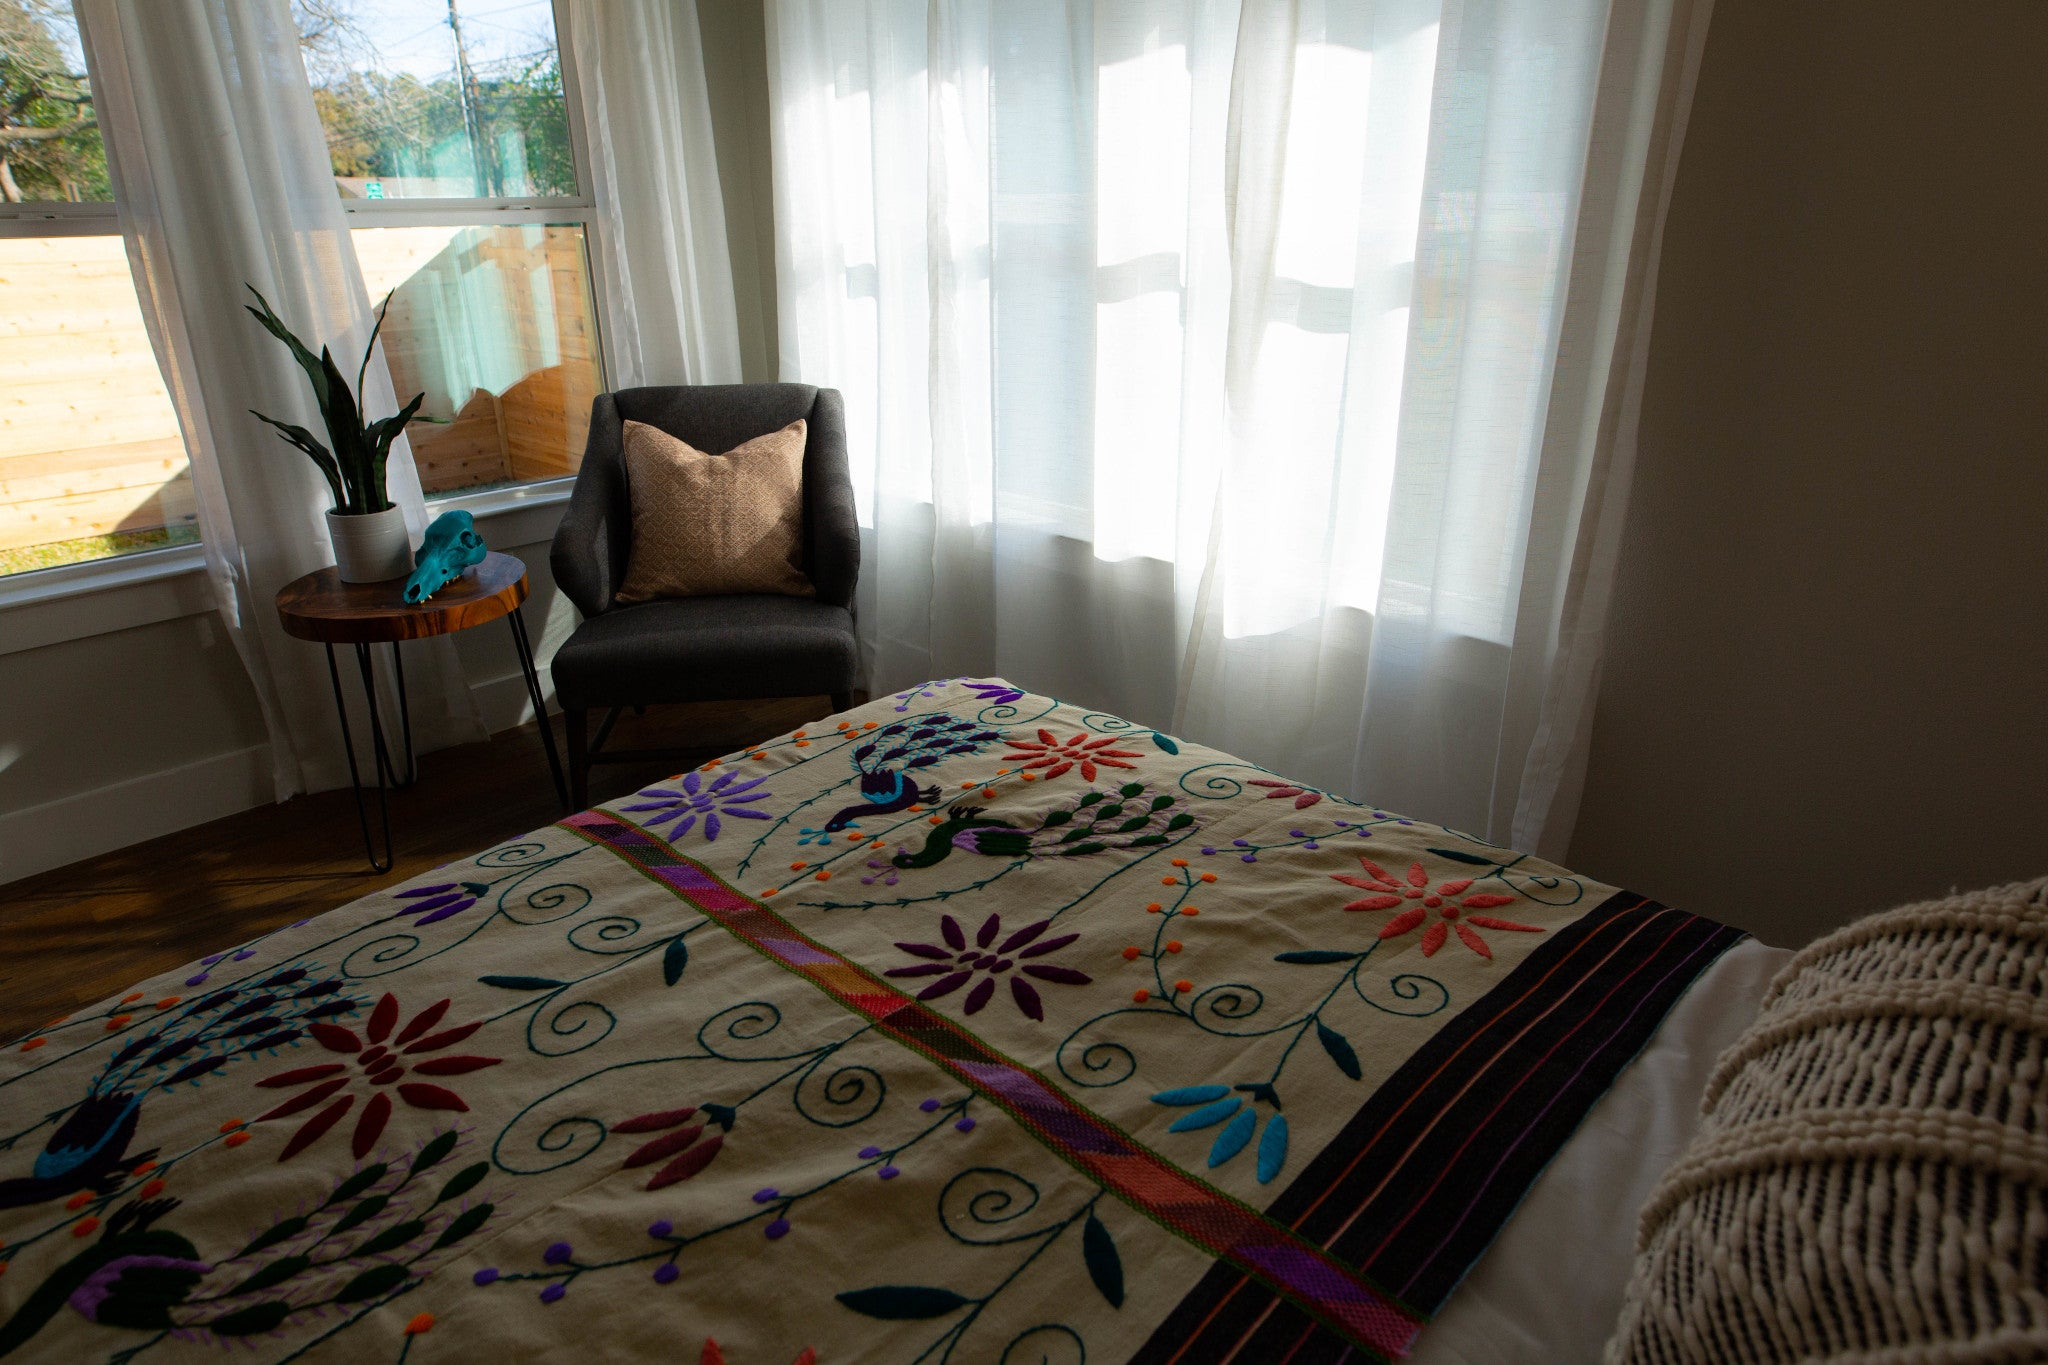 Hand-Loomed and Hand-Embroidered Throw